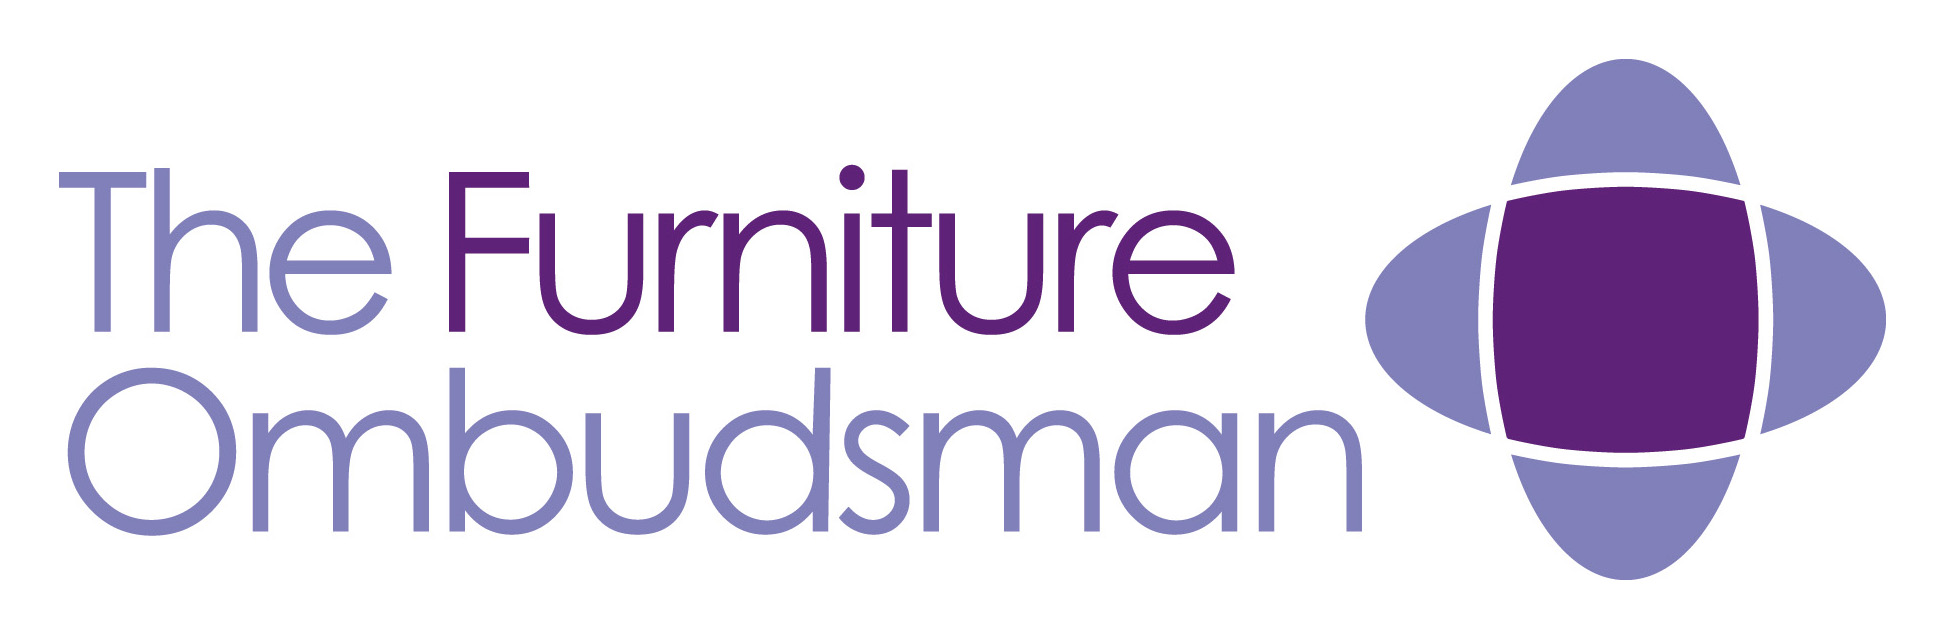 Furniture Ombudsman Of The Furniture Ombudsman Launches New Training Events In